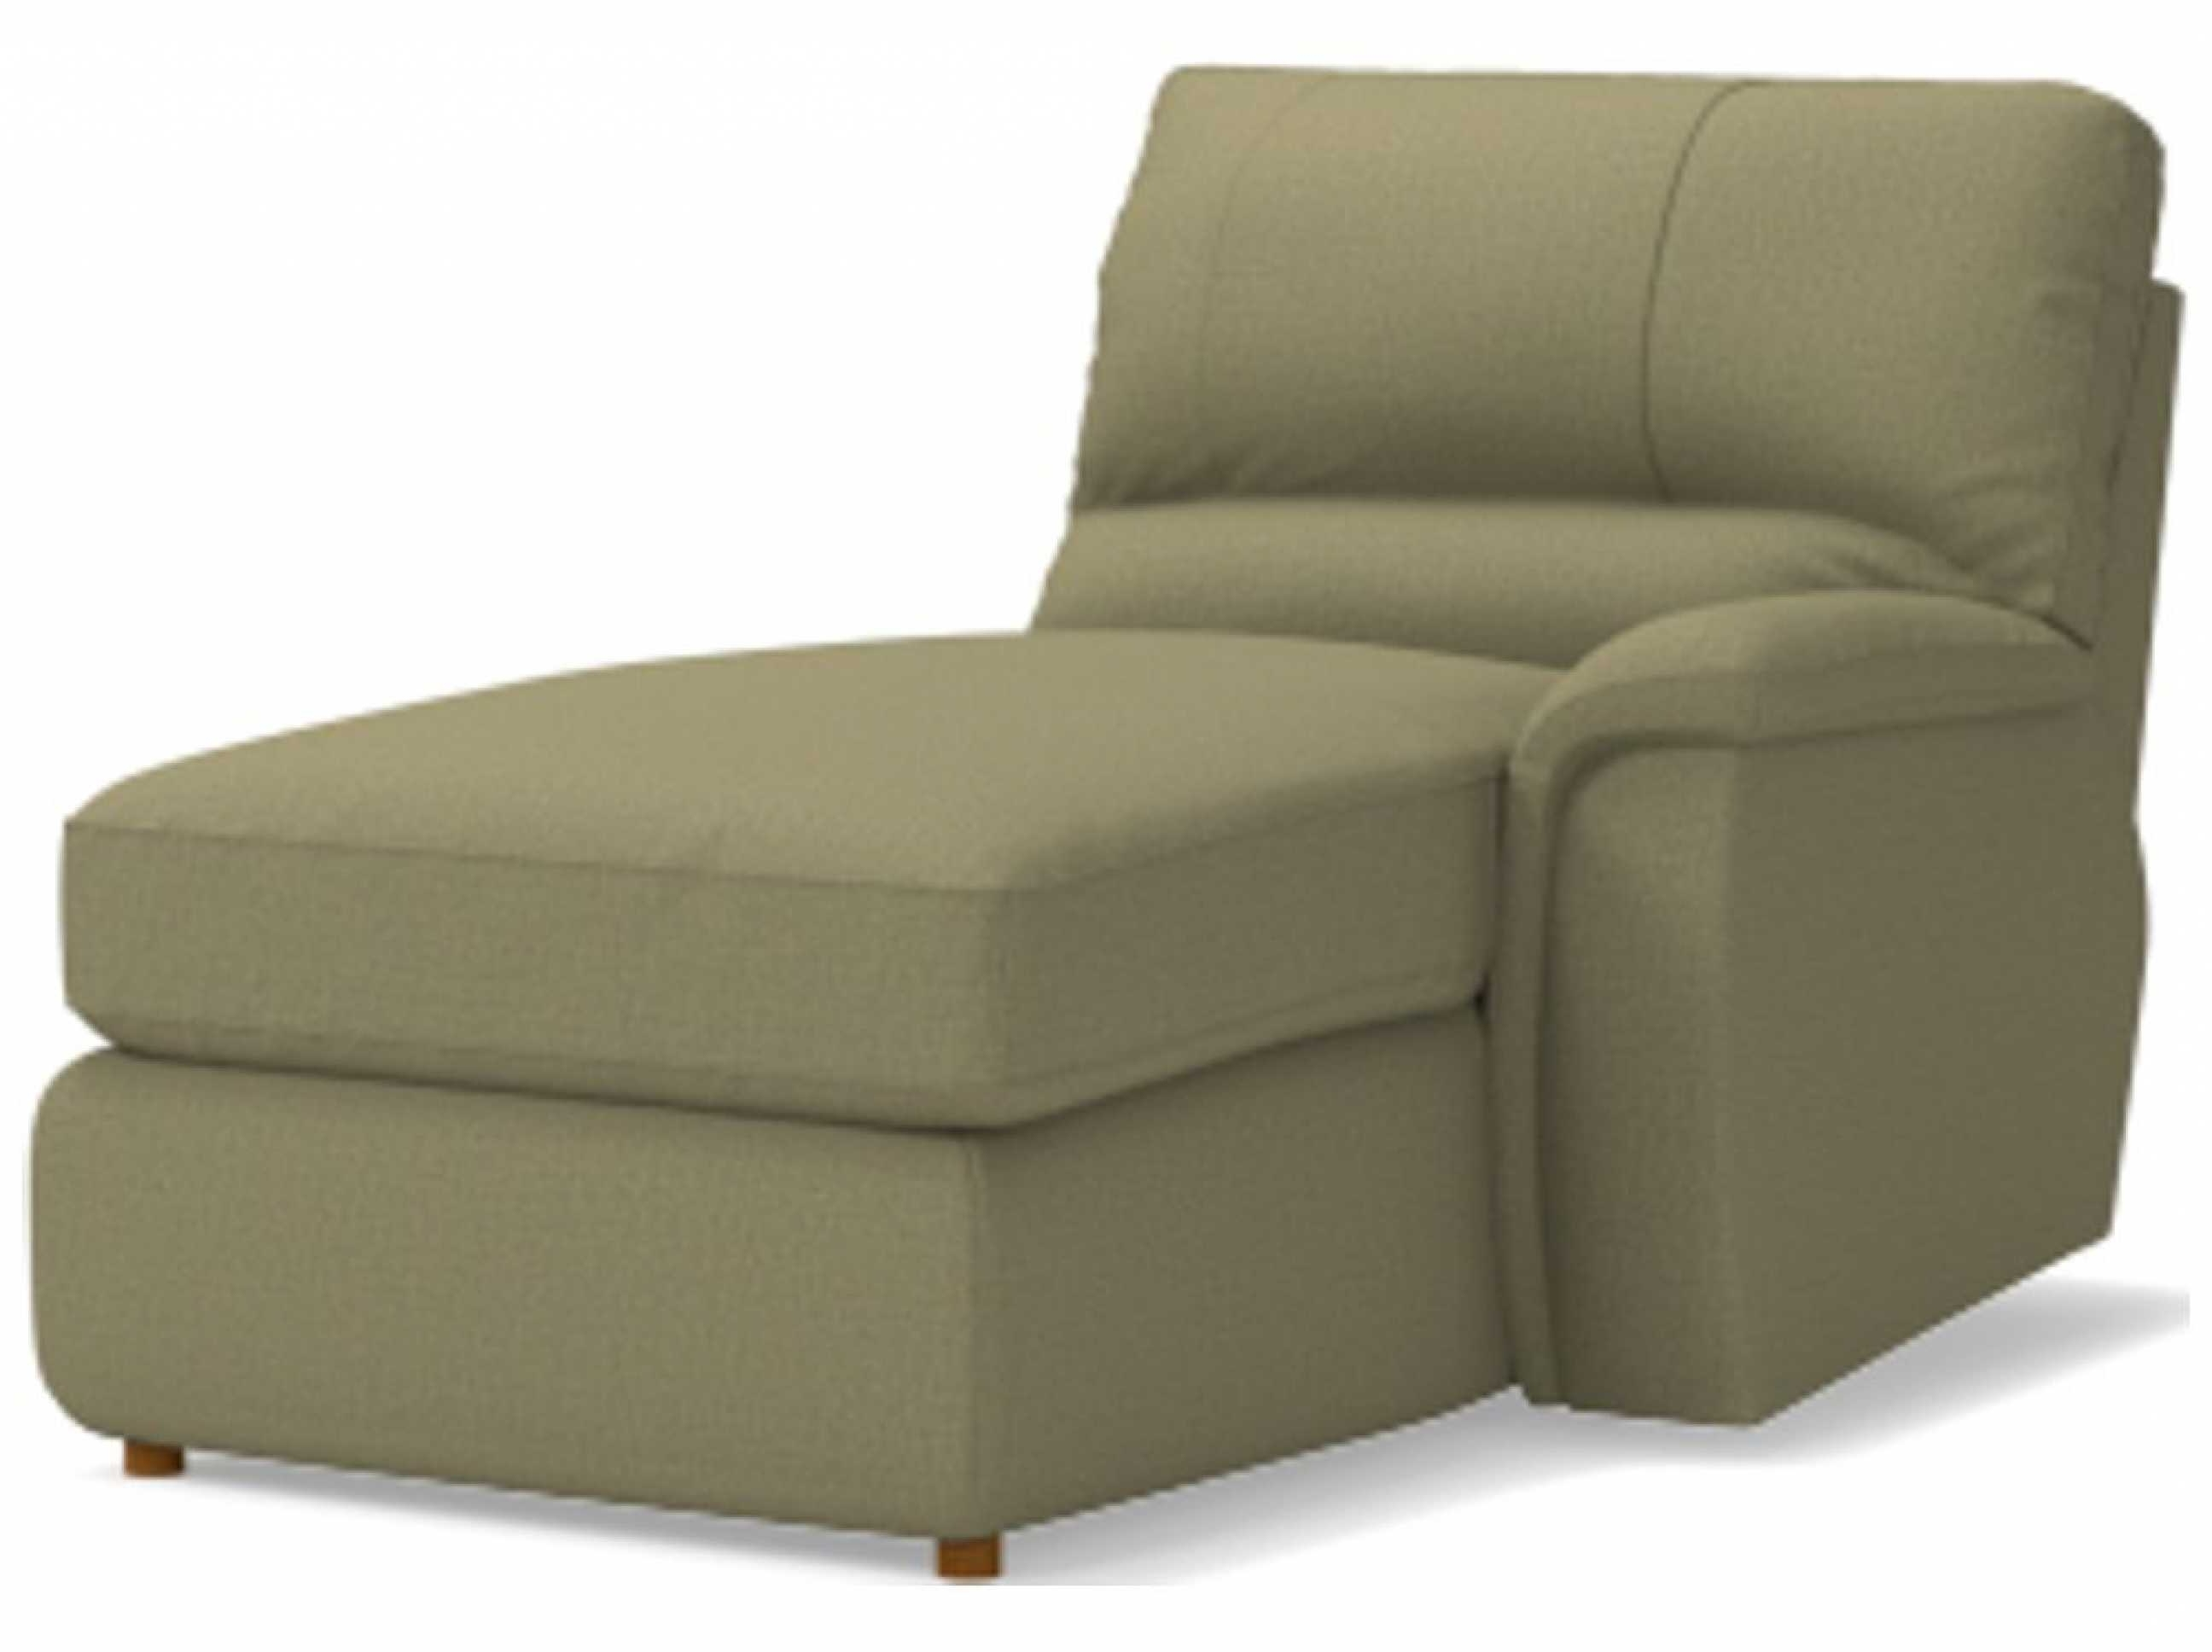 Varossa Chaise Lounge Recliner Chair Sofabeds Throughout Most Current Varossa Chaise Lounge Recliner Chair Sofa Bed – Chair Design Ideas (Gallery 6 of 15)